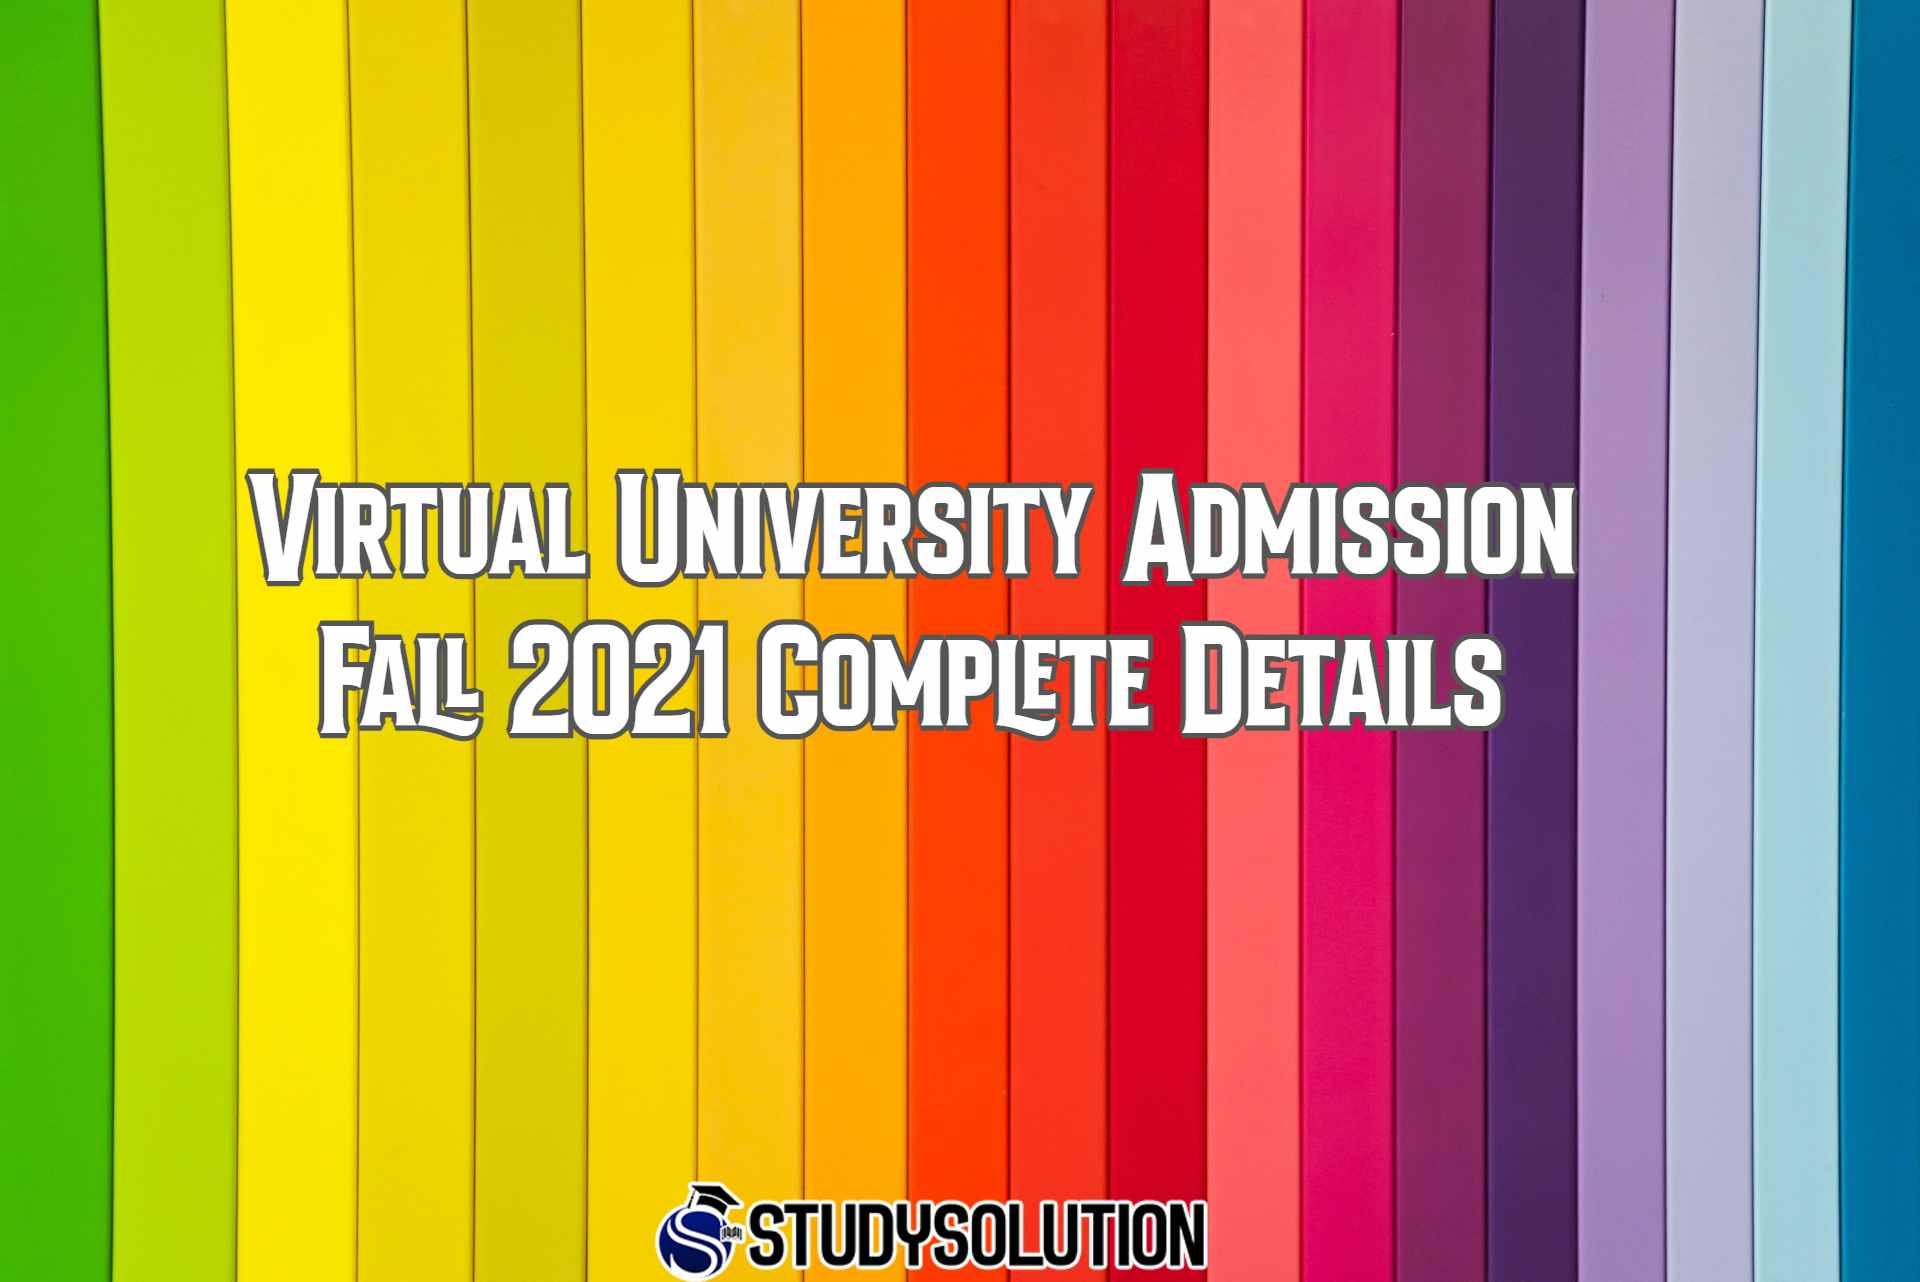 Virtual University Admission Fall 2021 Complete Details